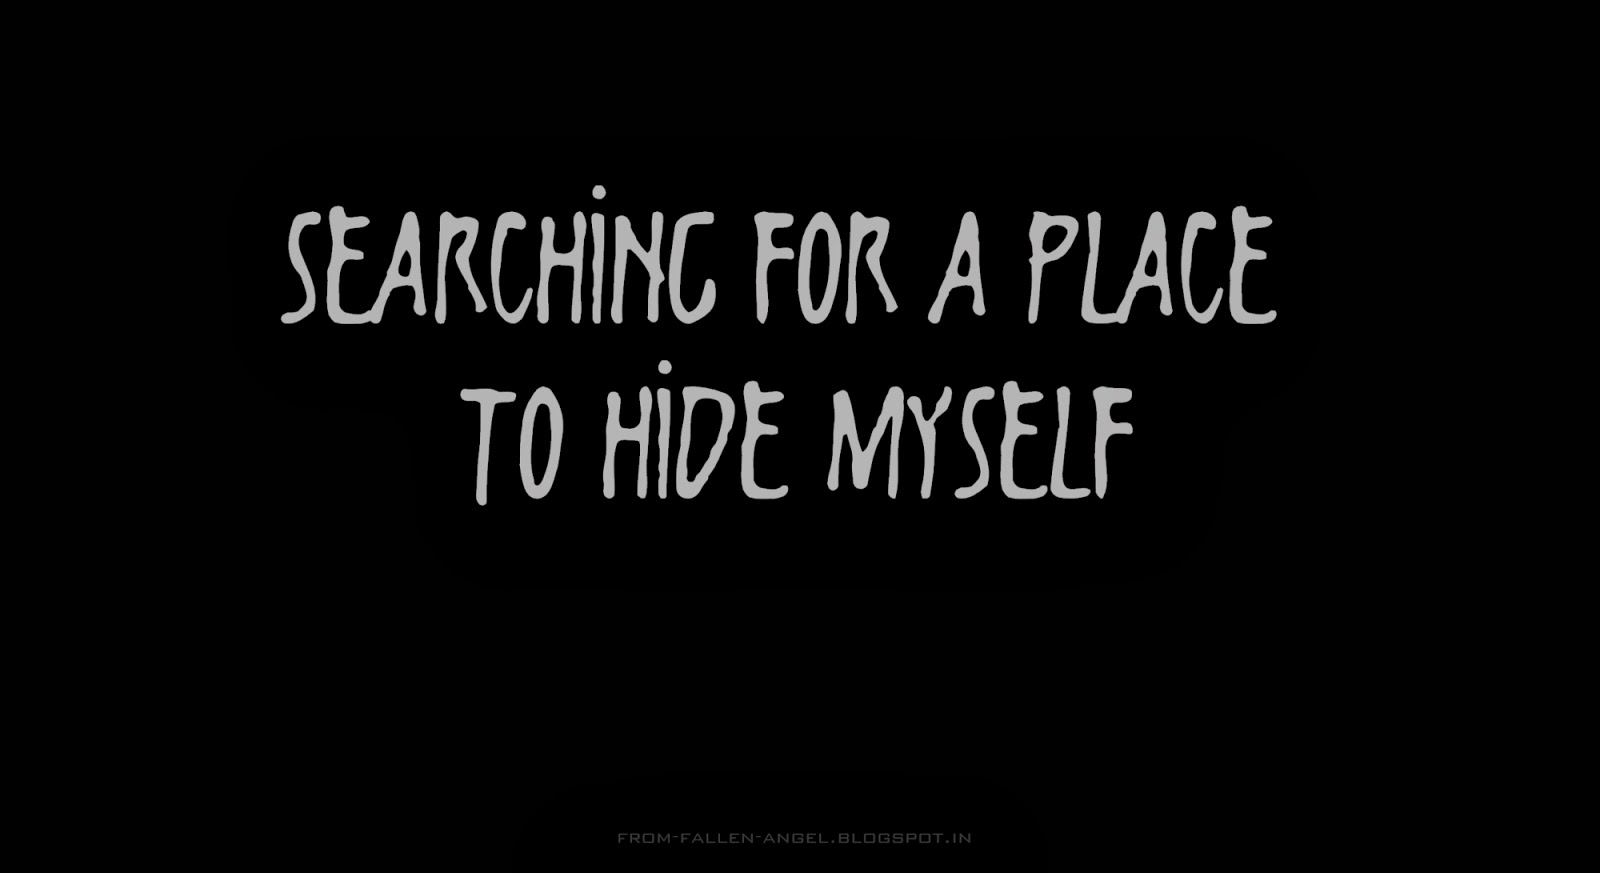 Searching for a place to hide myself